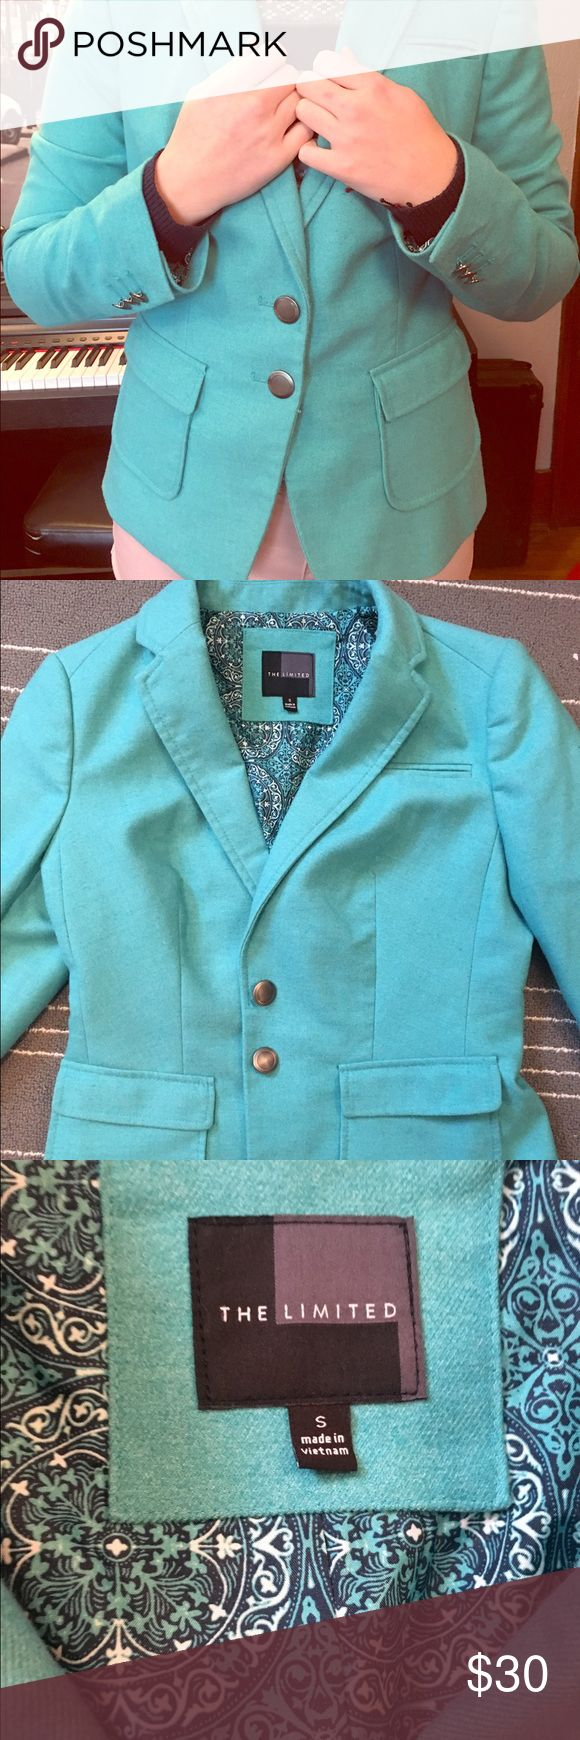 Teal Women's Suit Jacket Polyester and rayon beautiful and professional suit jacket. Only worn once! Let me know if you have any questions!! The Limited Jackets & Coats Blazers